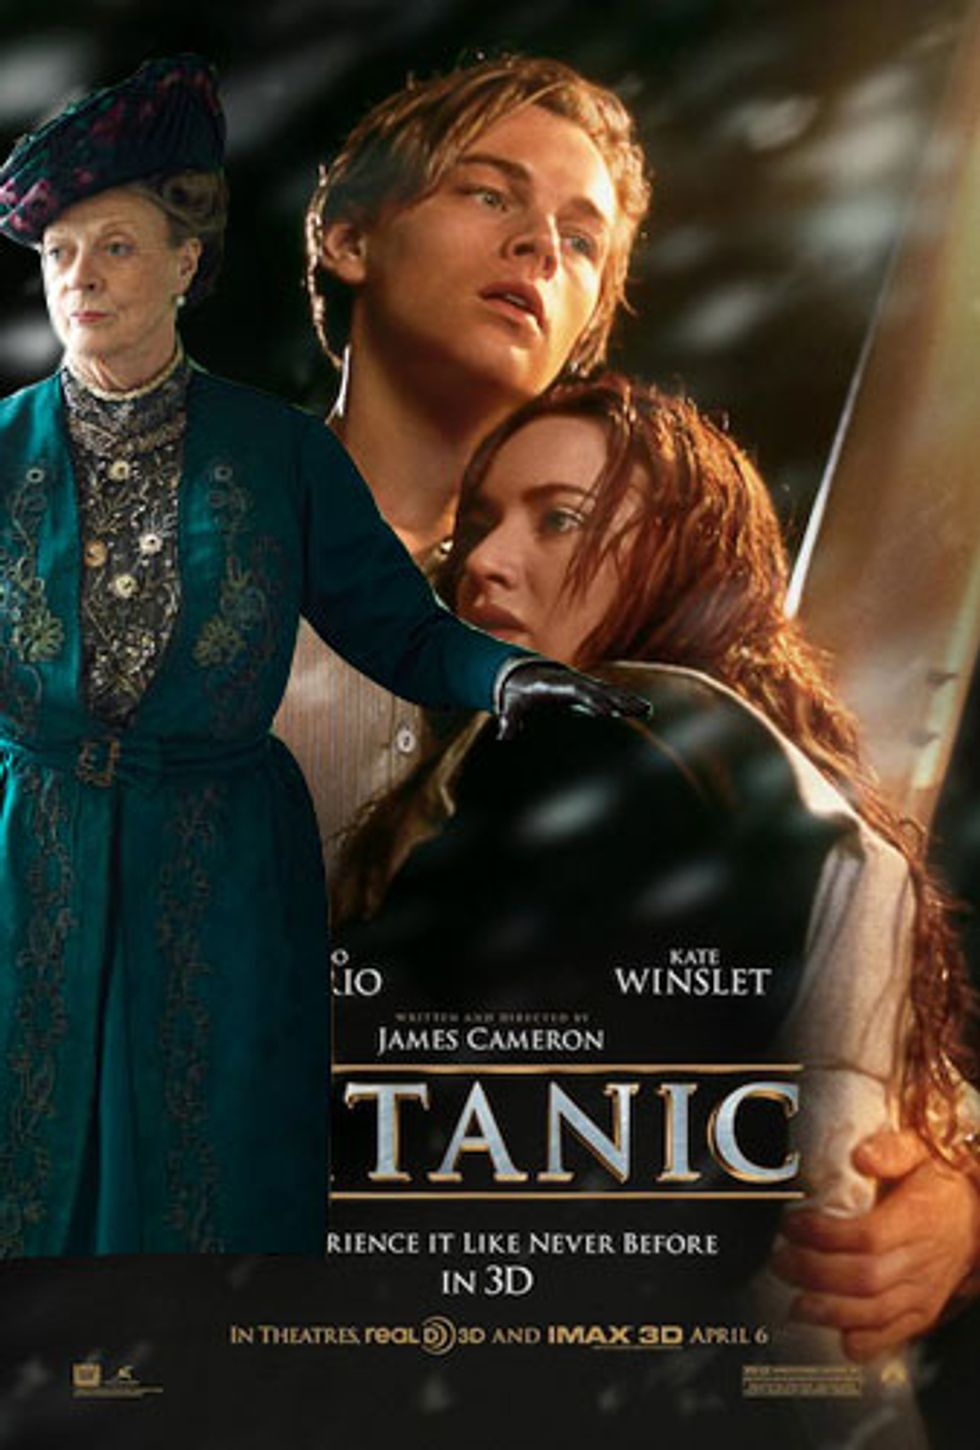 Titanic 3D Is Screaming for a Downton Abbey Tie-In